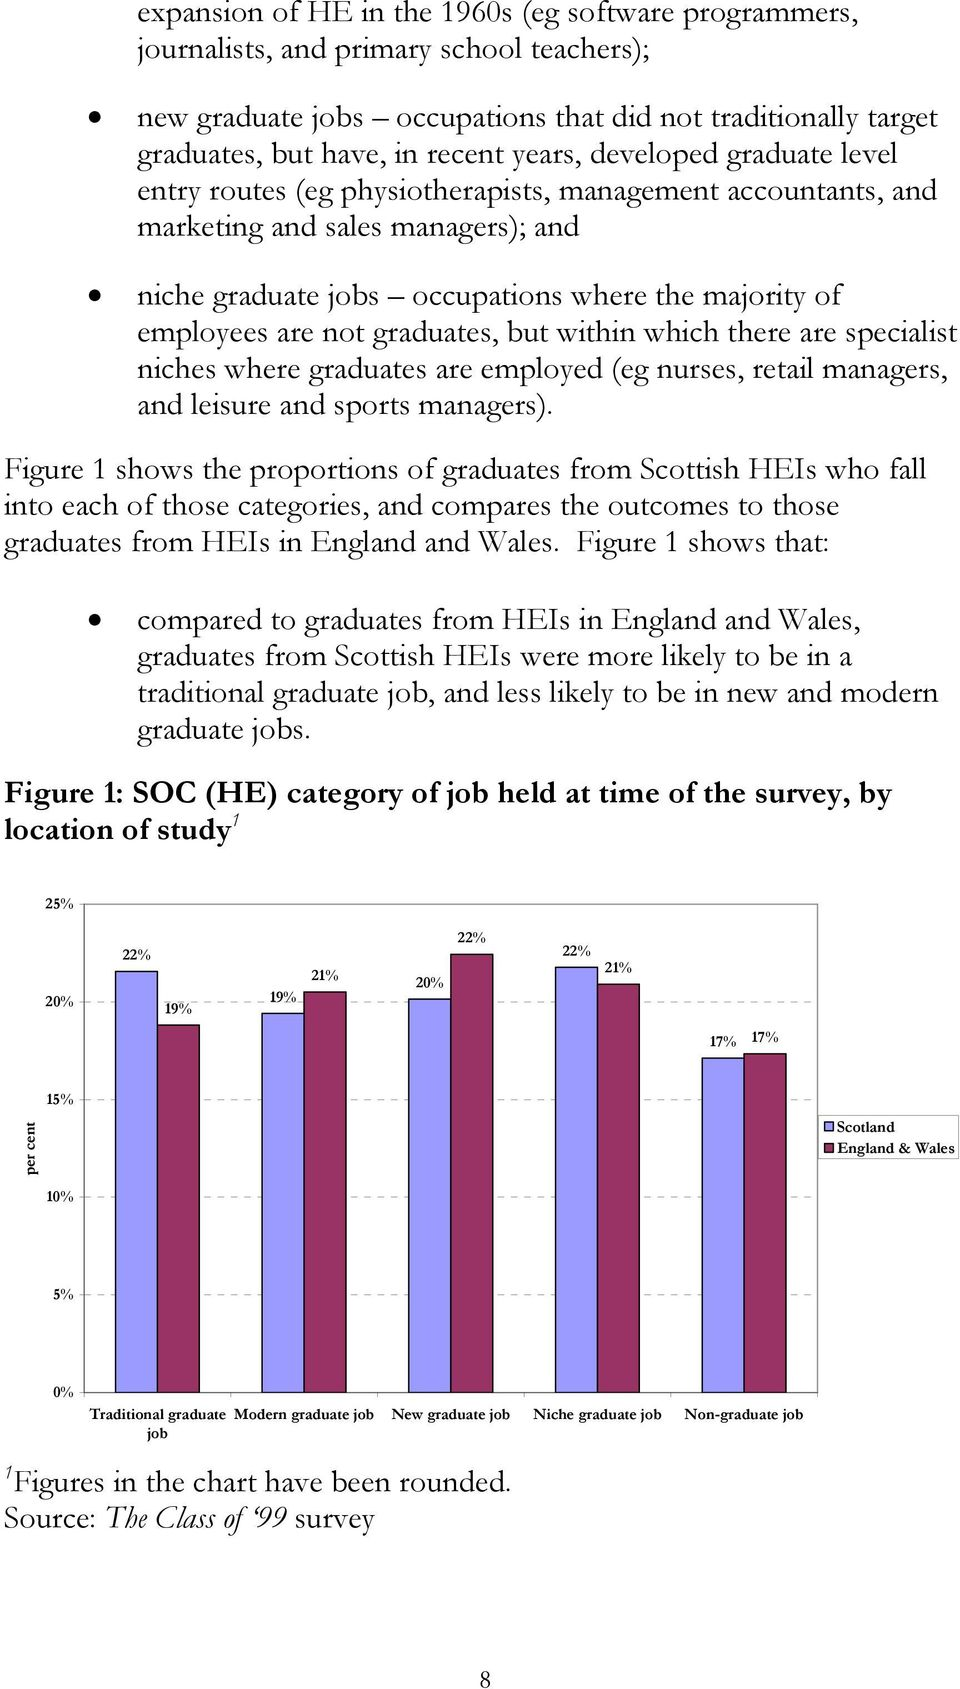 graduates, but within which there are specialist niches where graduates are employed (eg nurses, retail managers, and leisure and sports managers).